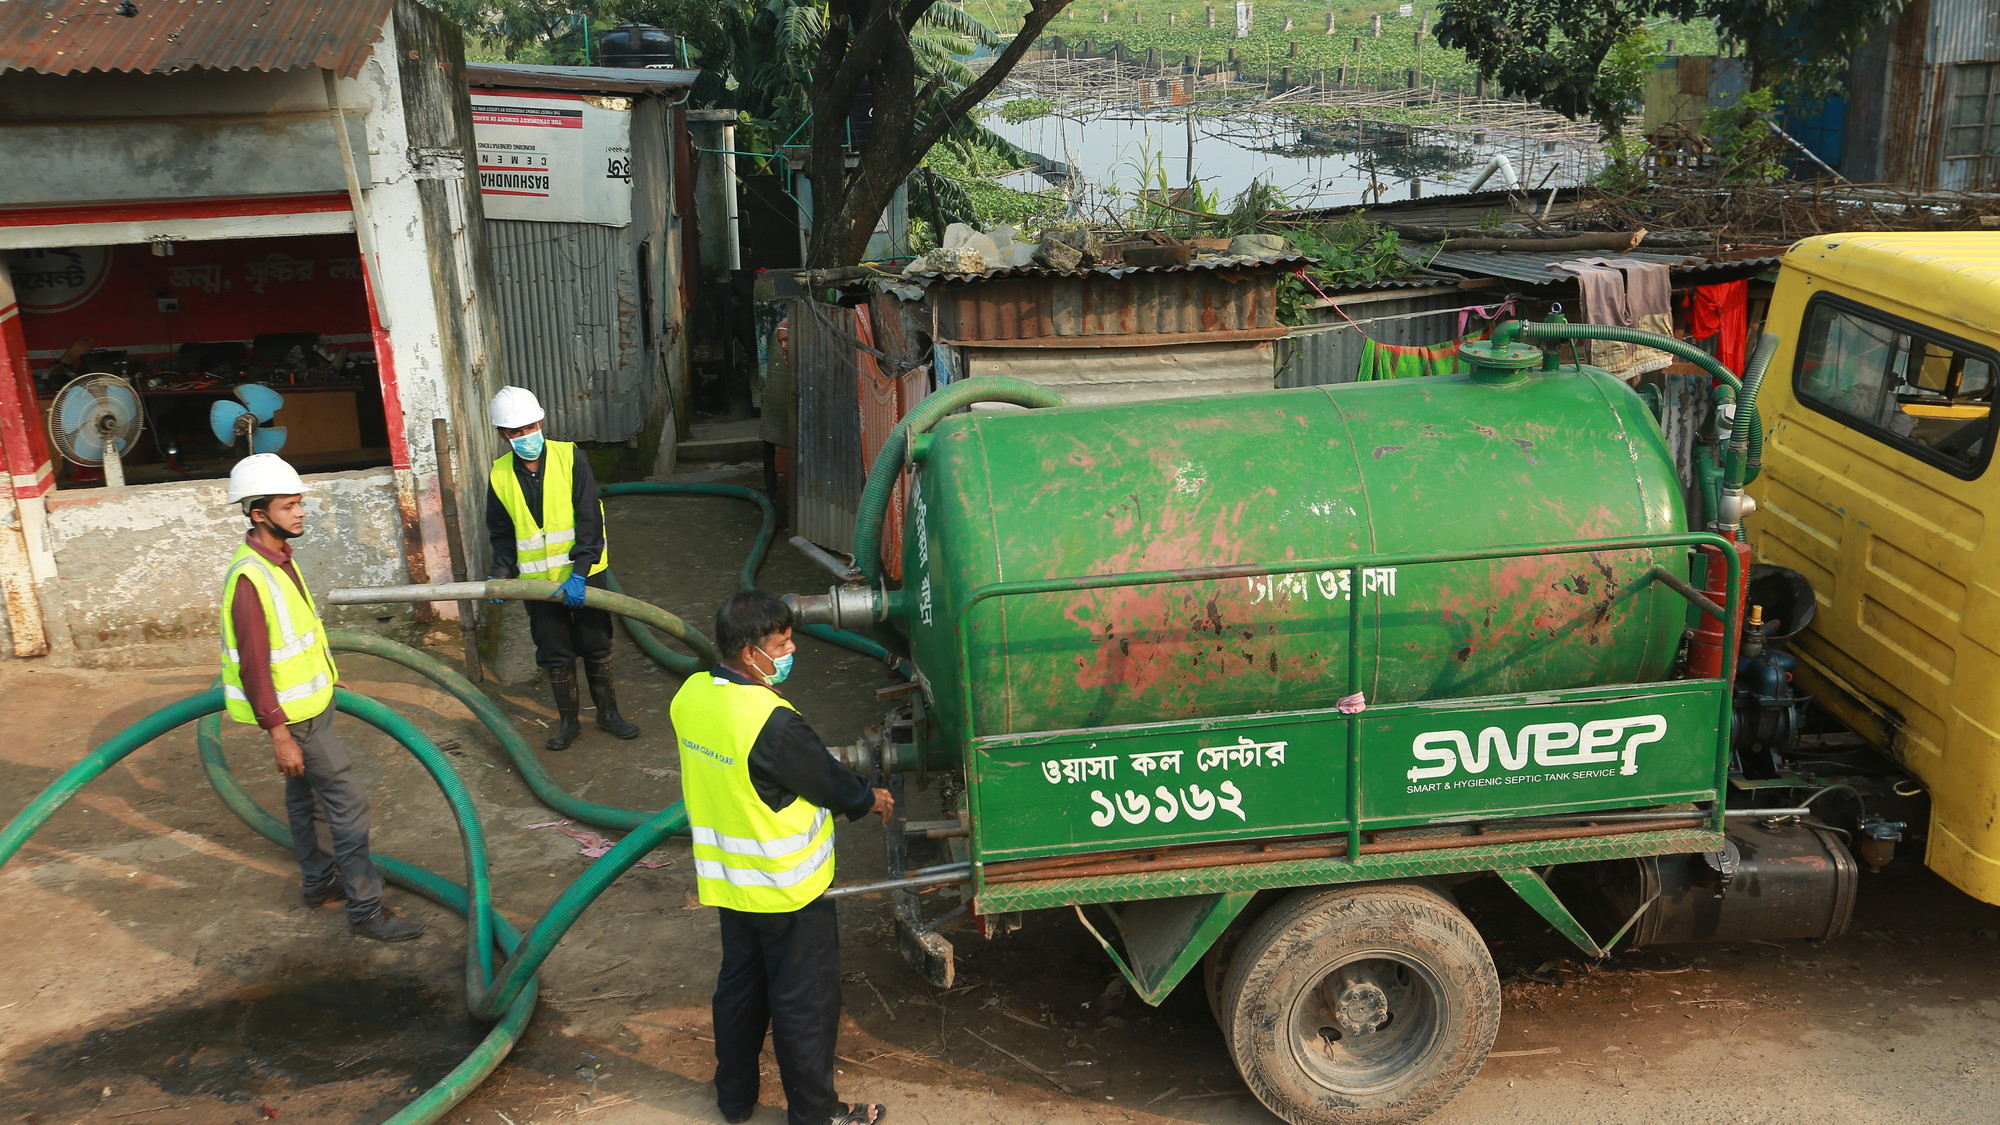 http://staging.skoll.org/wp-content/uploads/2015/01/SWEEP_vacuum_tanker_in_Dhaka_Bangladesh.jpg